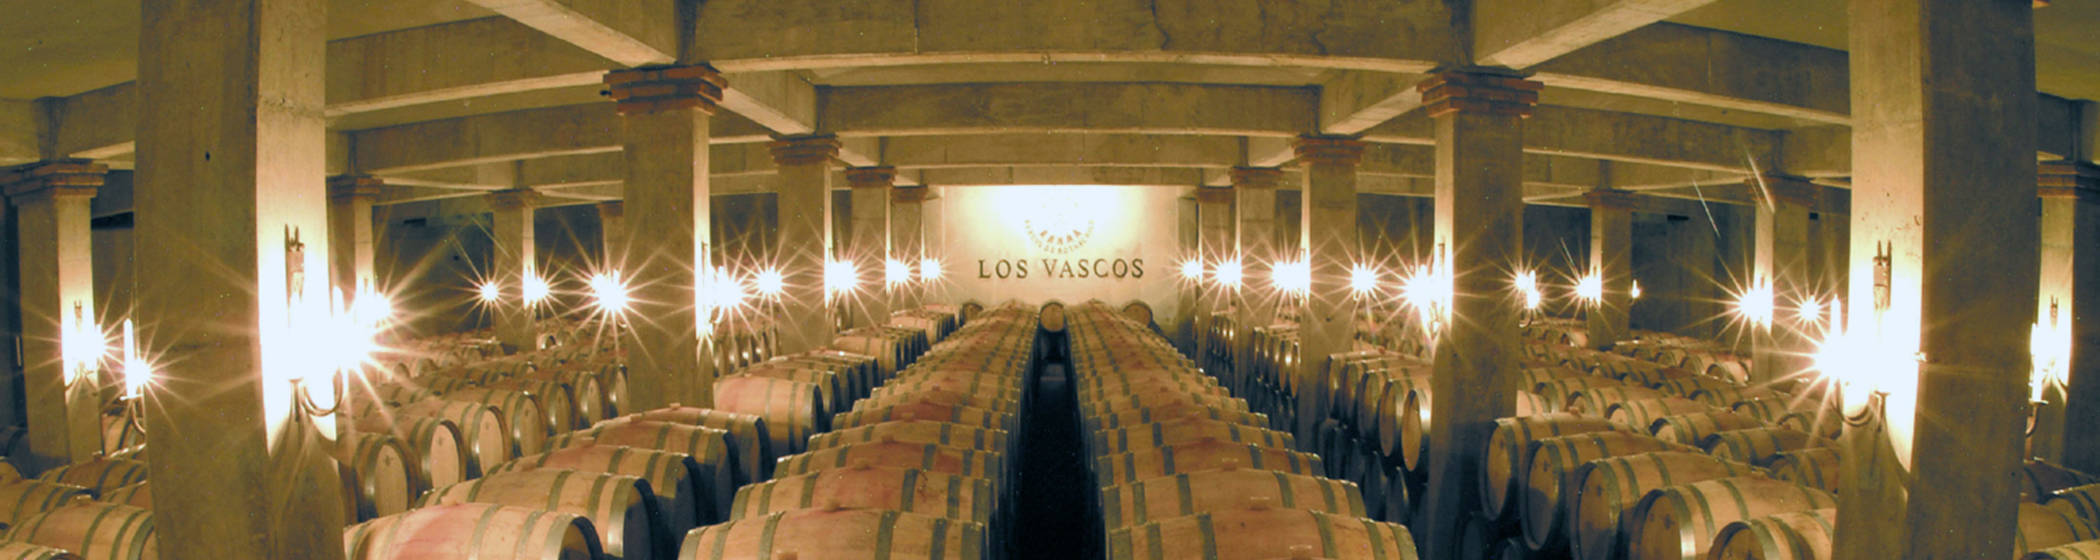 The cellars at Los Vascos